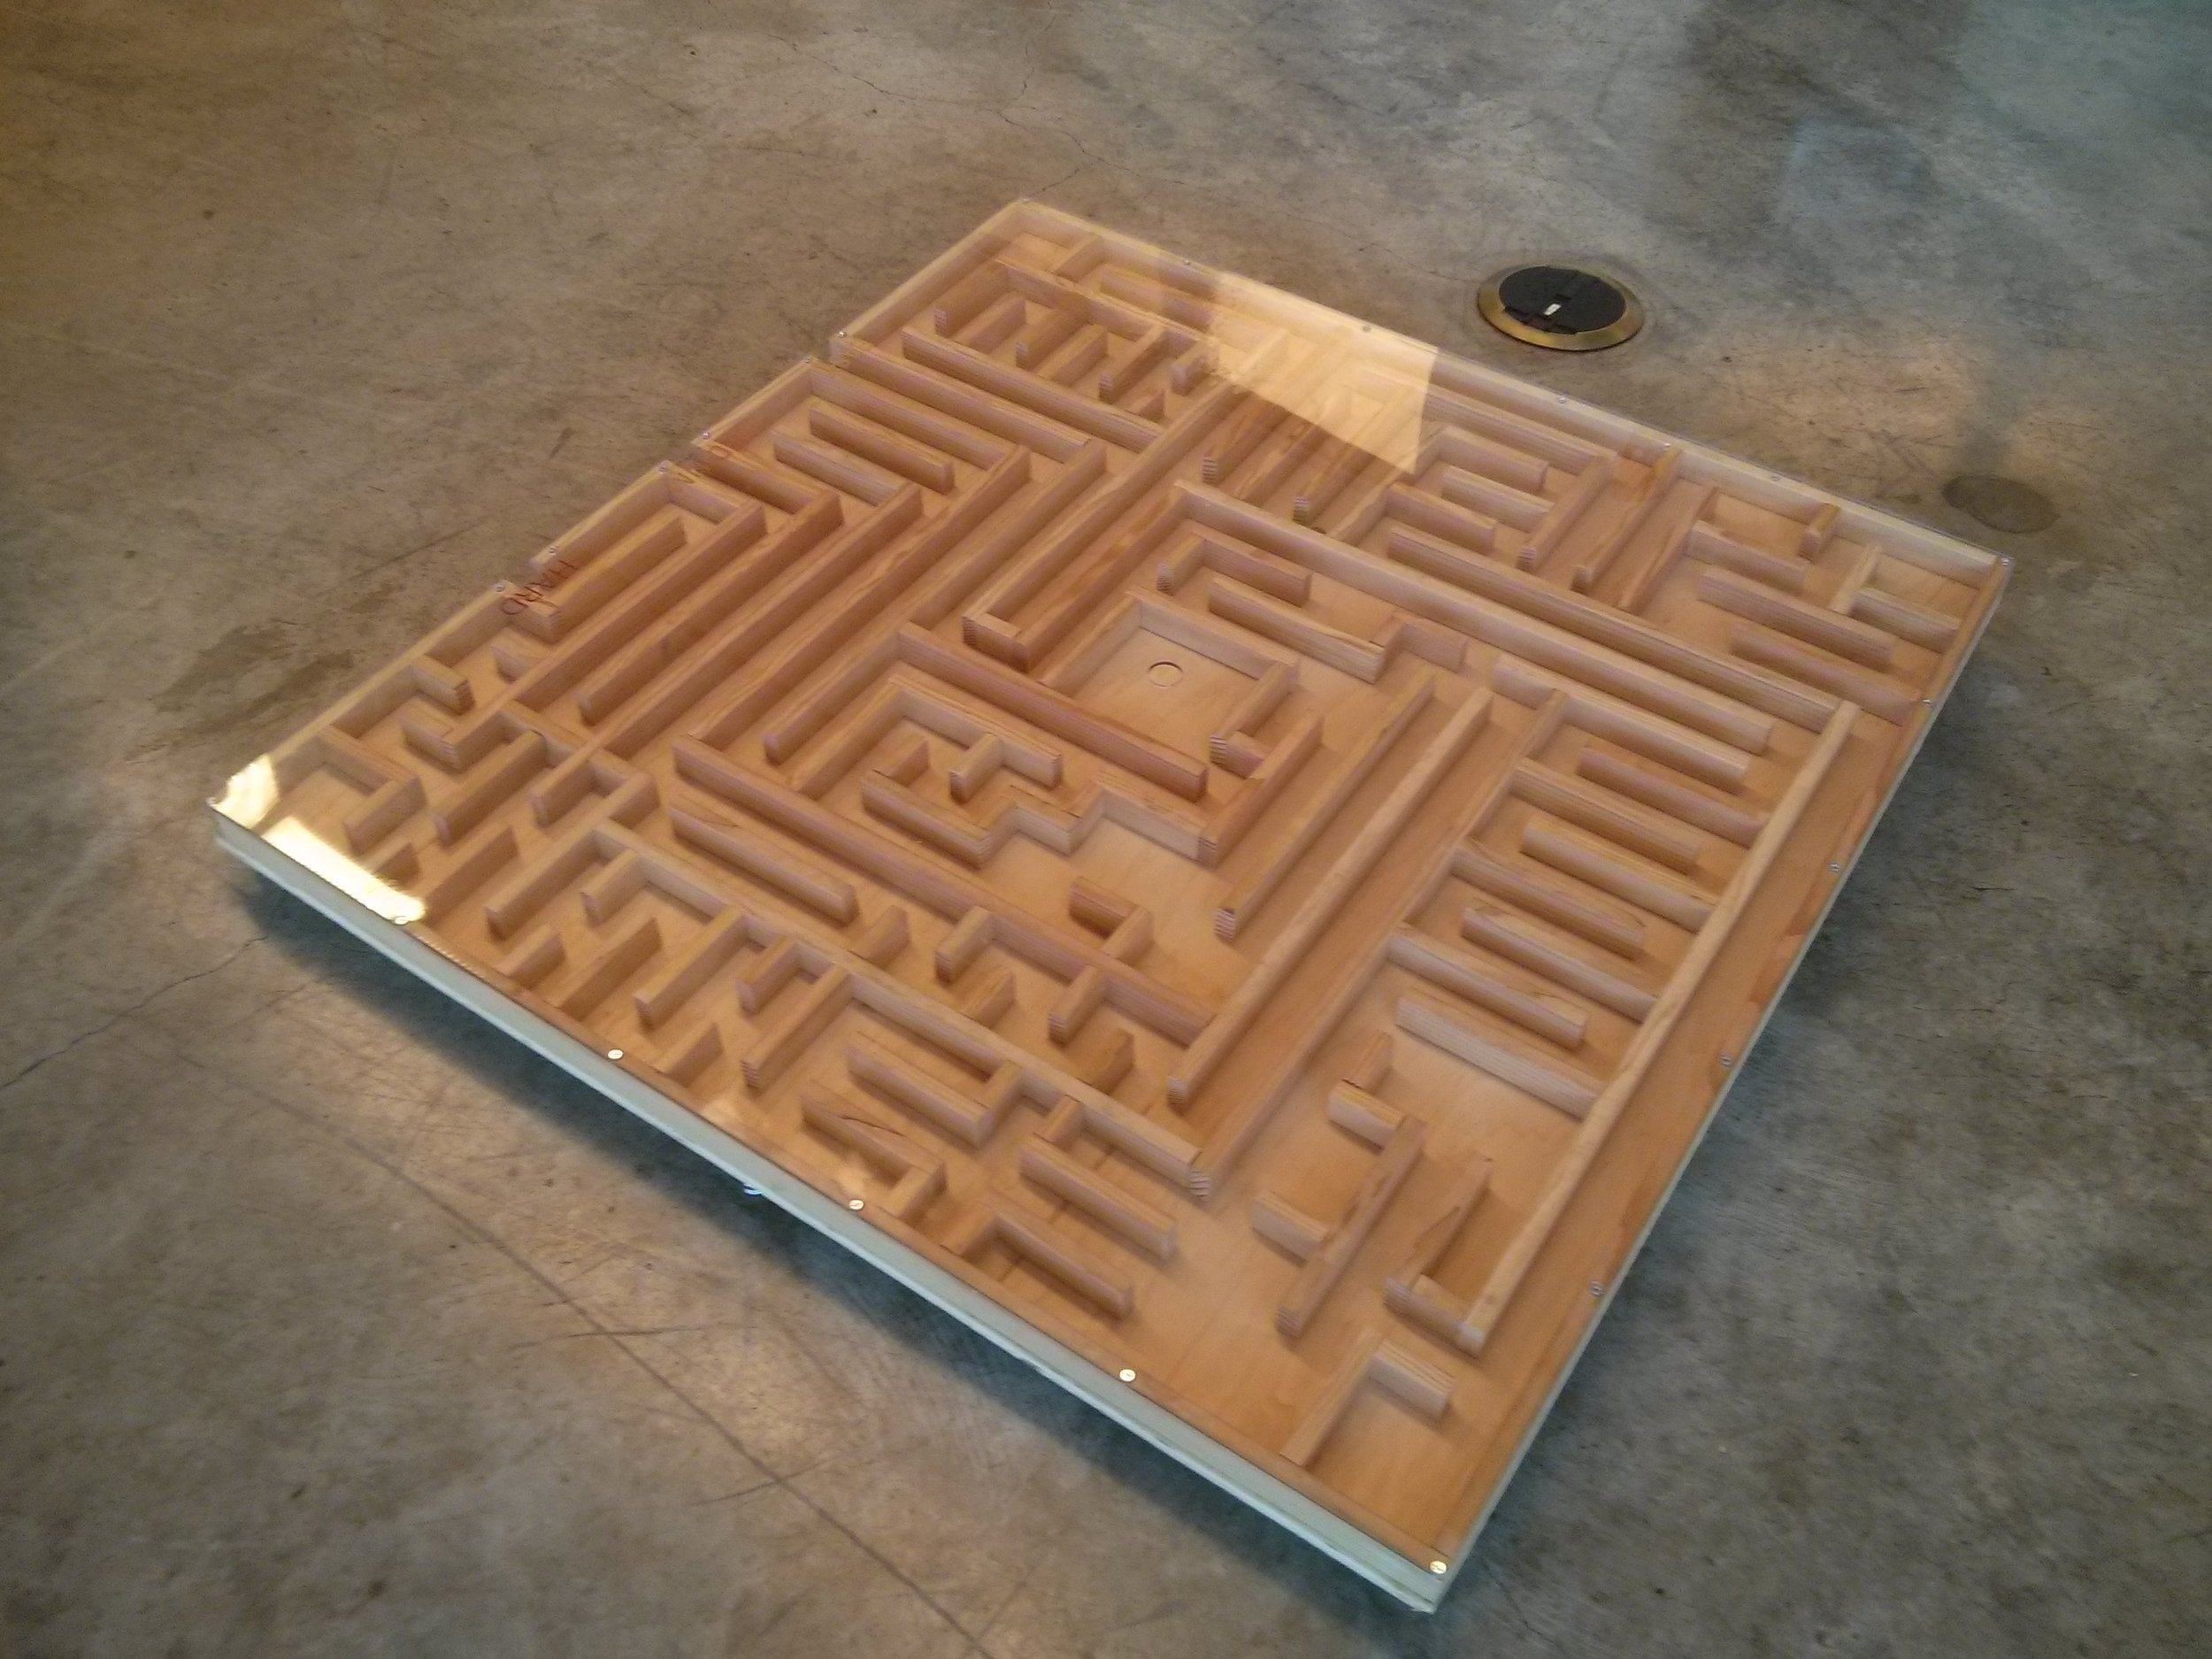 Maze Game - Go ahead stand on it. Guide the marble through this labyrinth. Get a special friend and do it together. You might need to get a little close.